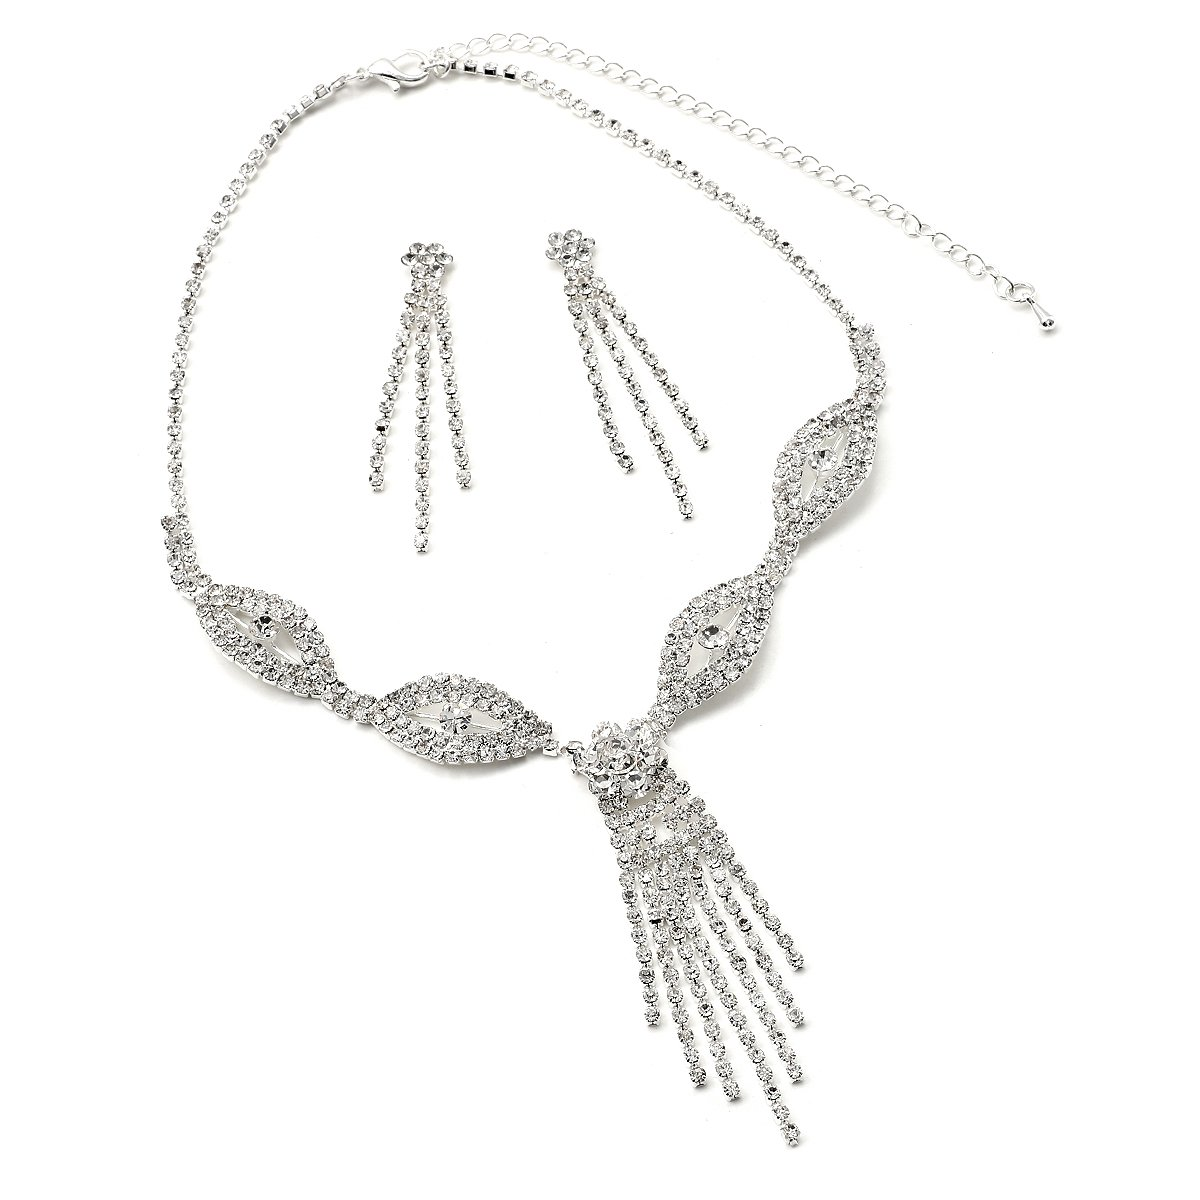 00c8d90eb6d7 Amazon.com  Silver Crystal Rhinestone 3 Strands Dangle Earrings   Eye  Shaped with Multiple Strands Dangling Chandelier Center Necklace Jewelry  Set  Jewelry